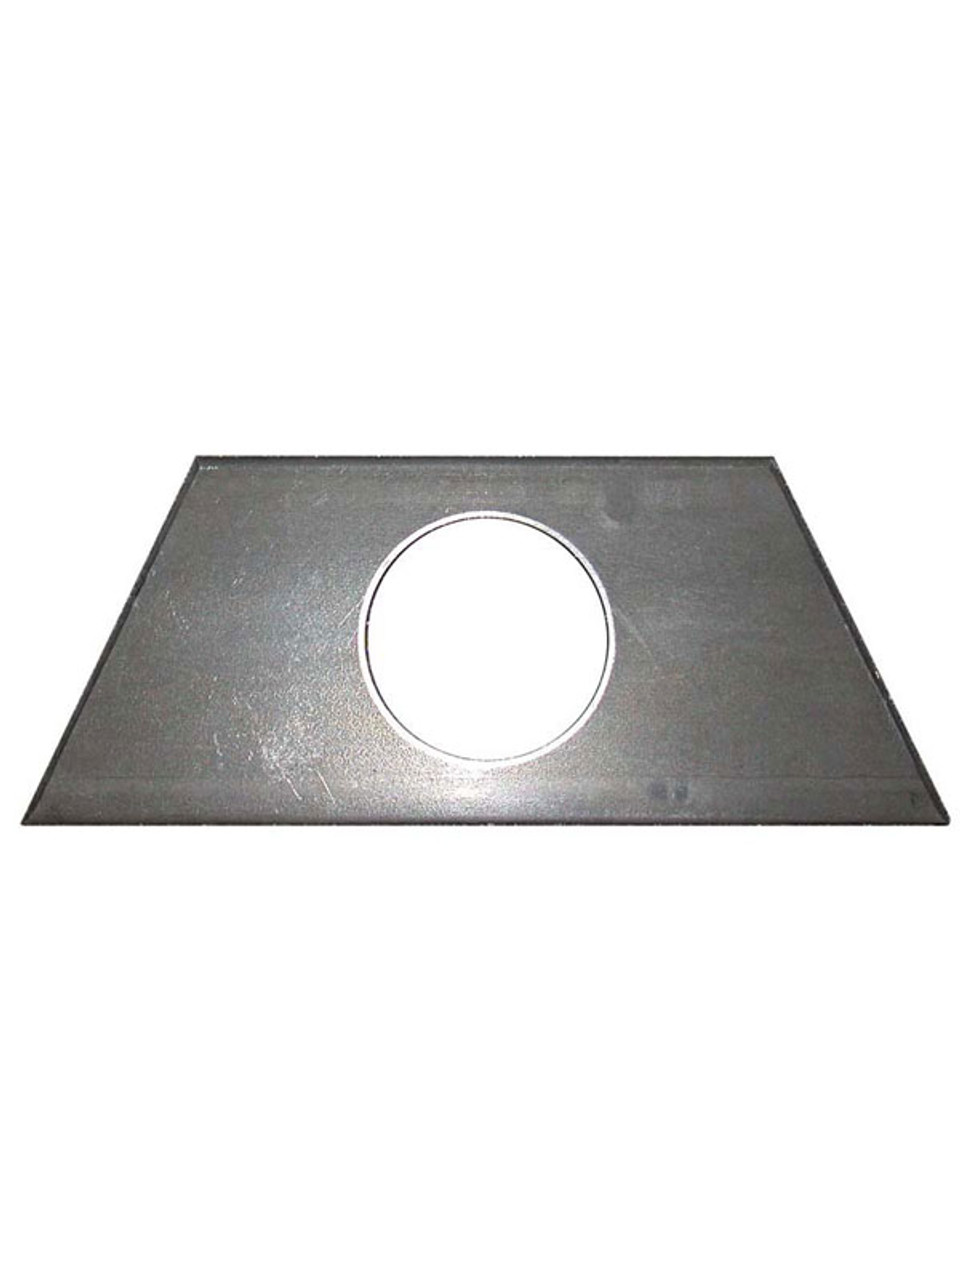 """83670 --- Bottom Support Plate, Fits Jack with 2-1/4"""" O.D. Outer Tube"""